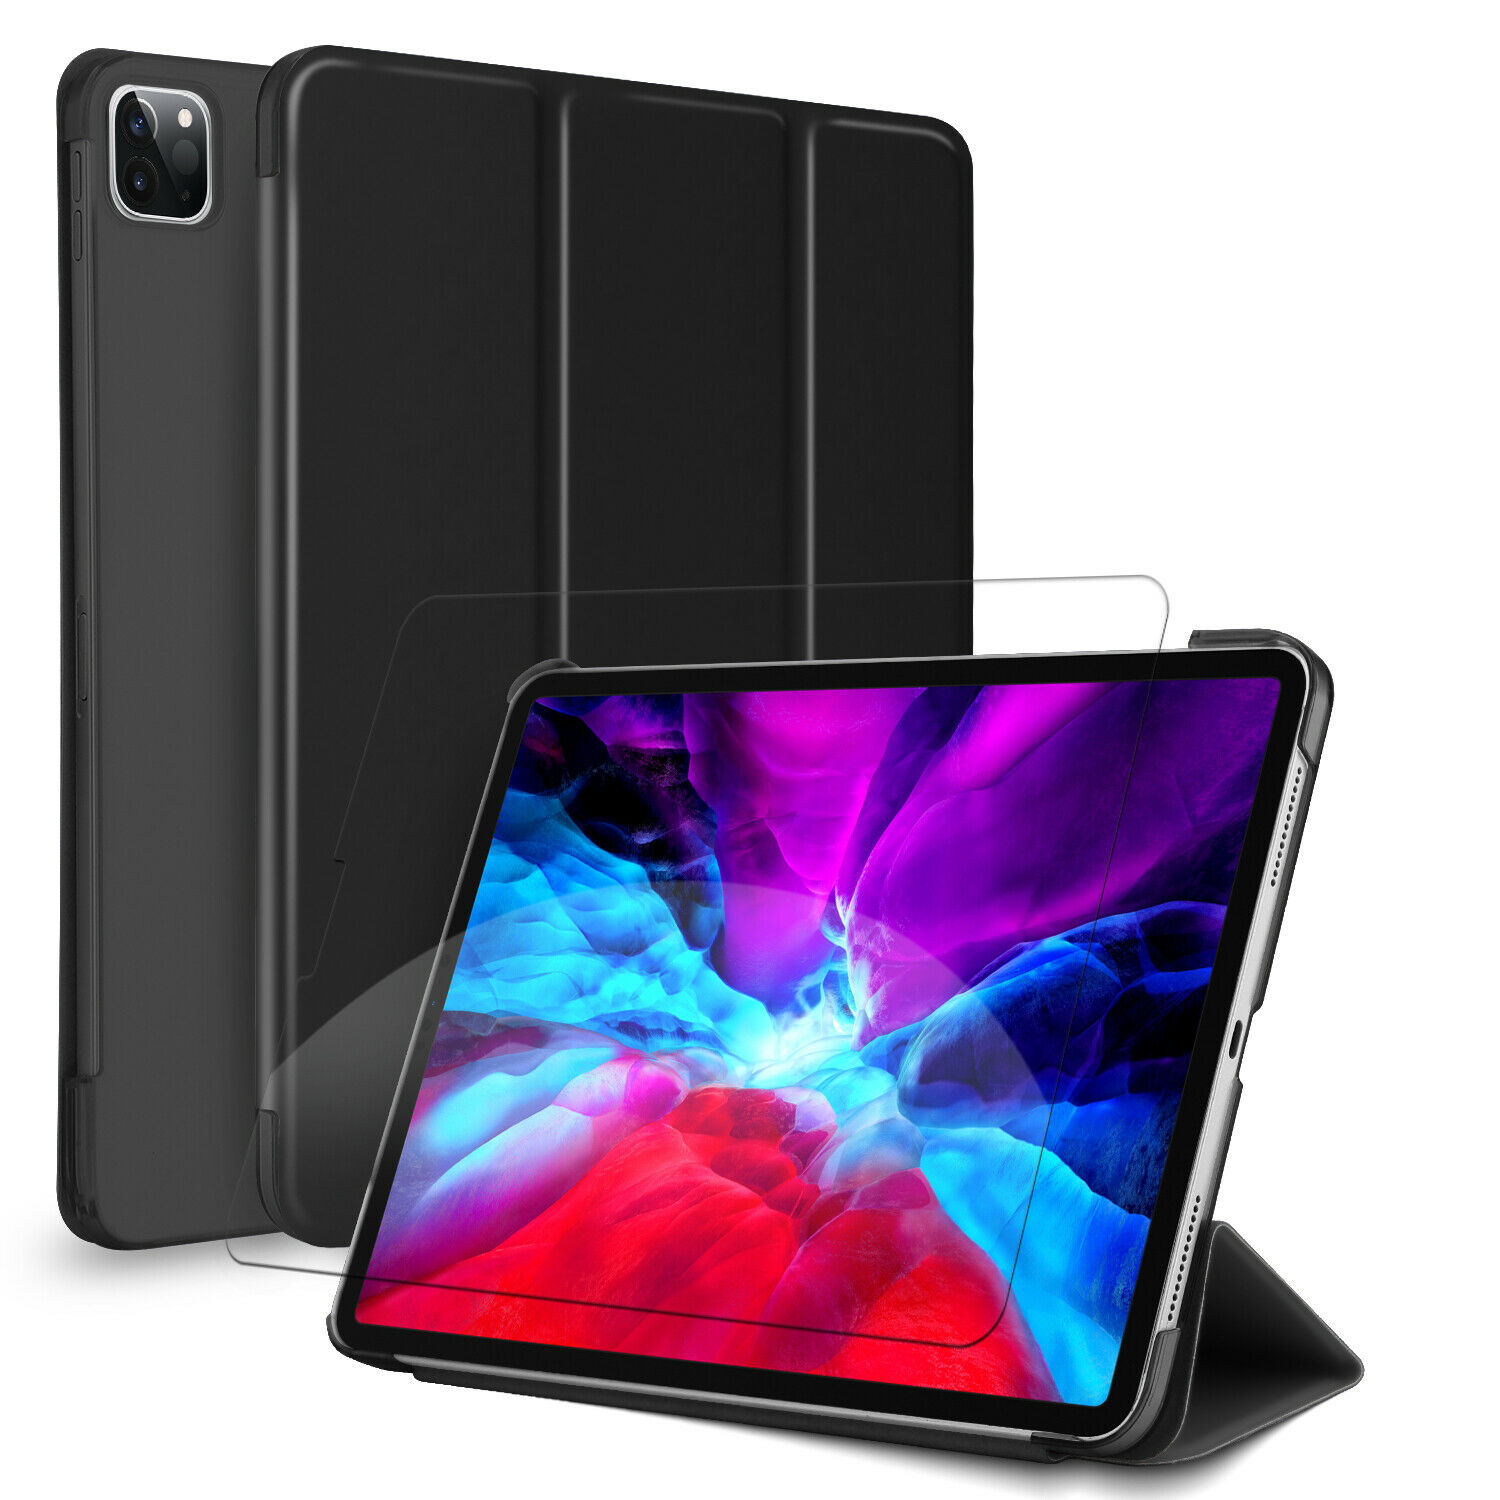 For iPad Pro 11-inch 2021/2020 Tablet Case Leather Stand Cover, Screen Protector Cases, Covers, Keyboard Folios